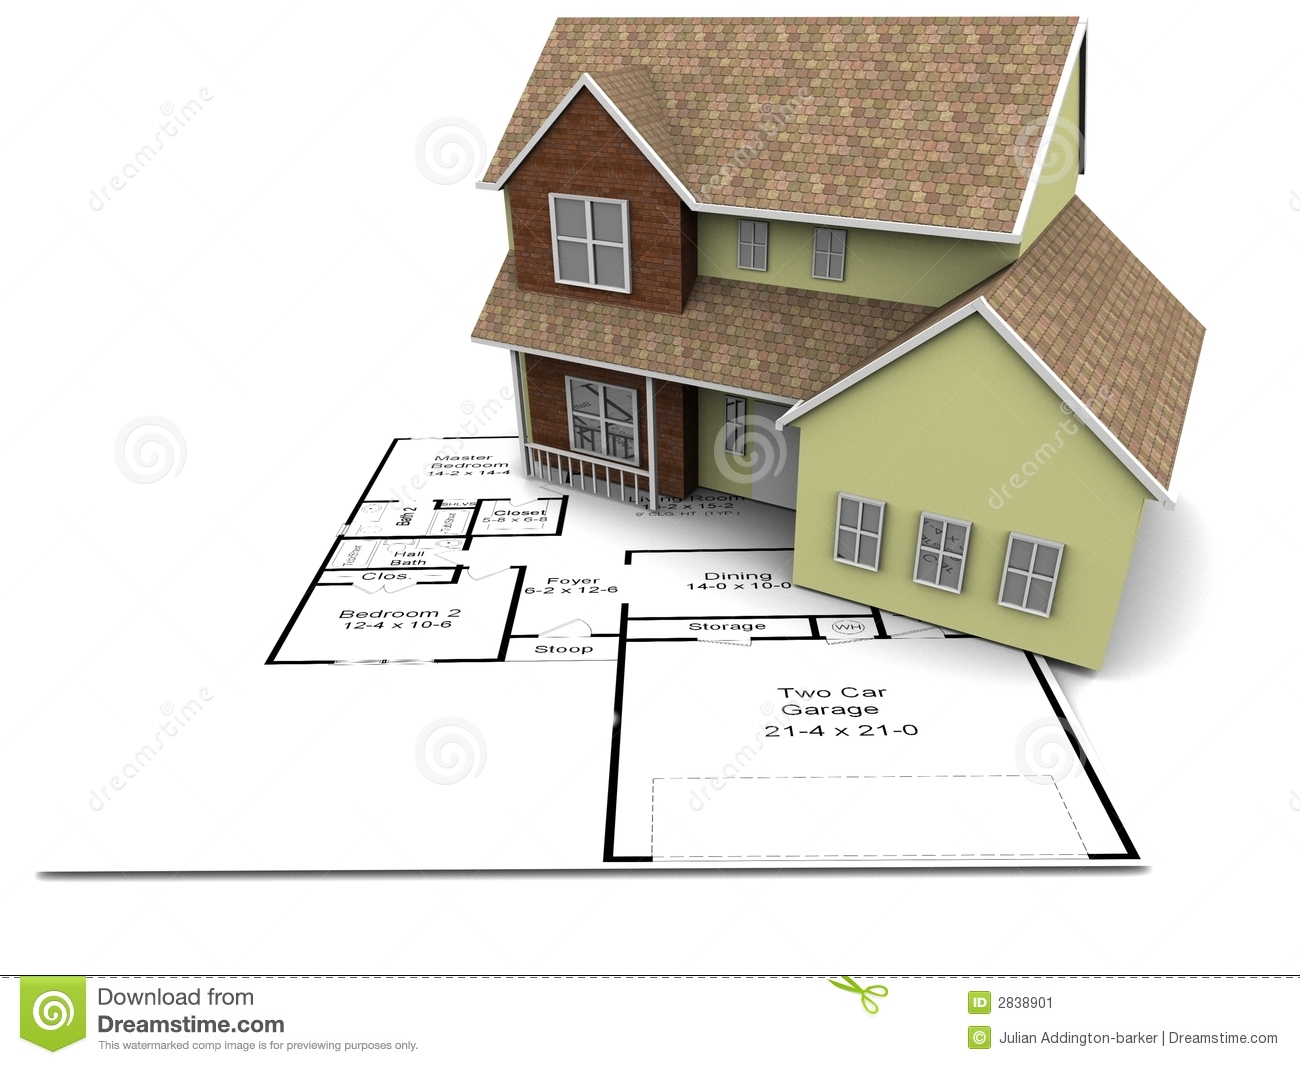 New house plans stock illustration illustration of house for Latest house plan